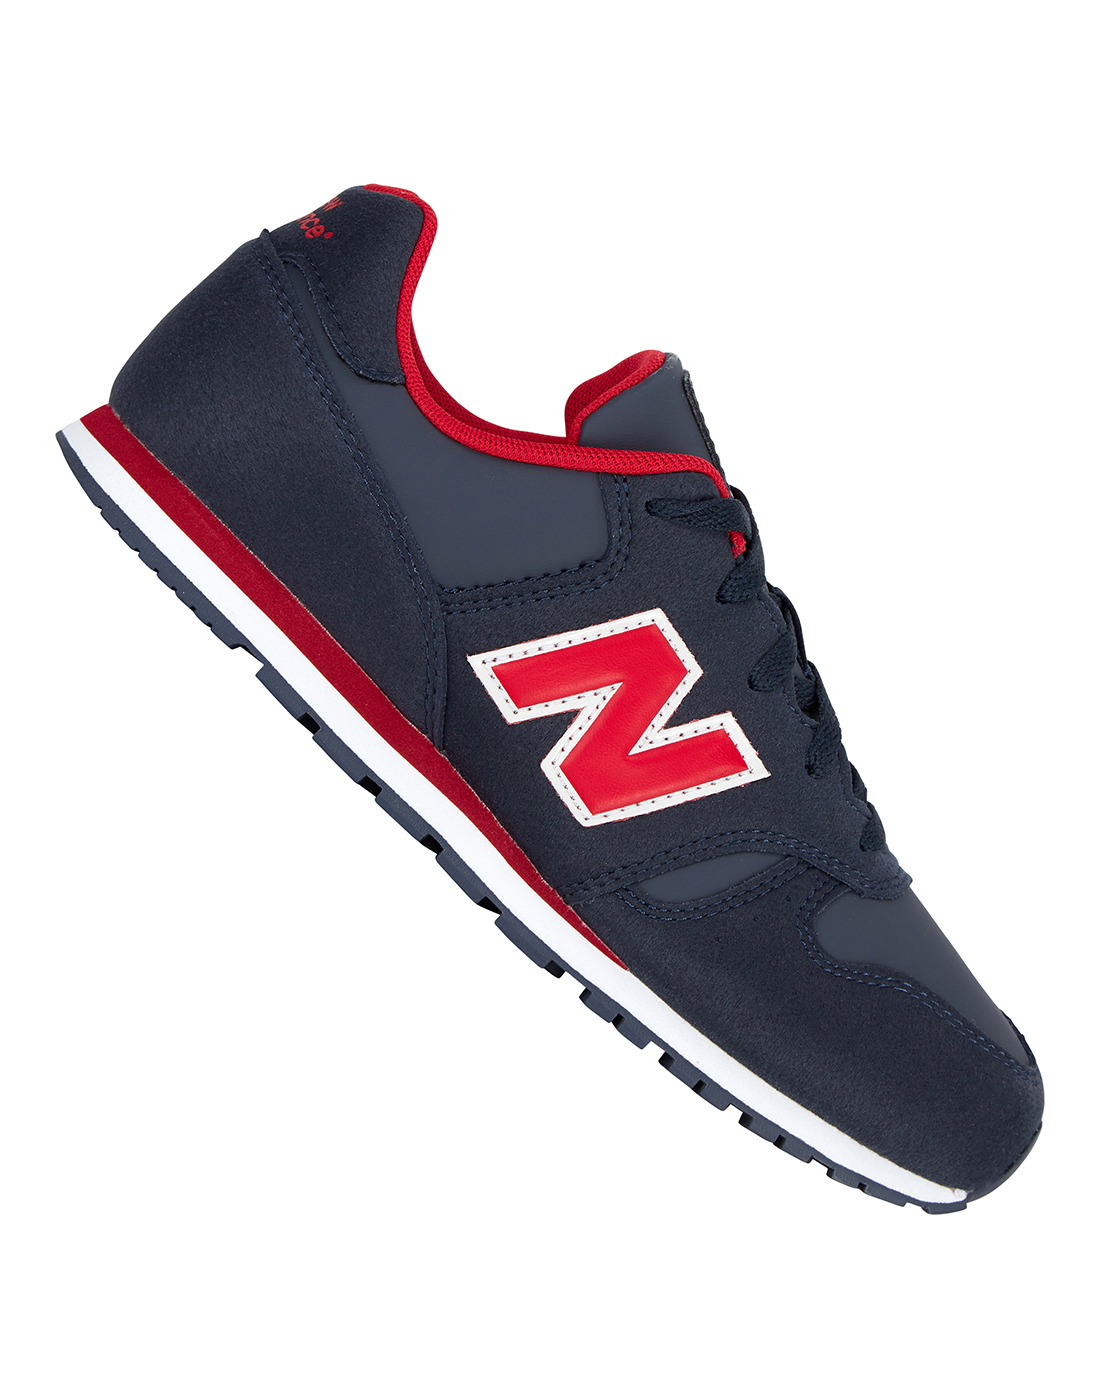 01c9e781a1806 New Balance Older Boys 373 Trainer | Life Style Sports